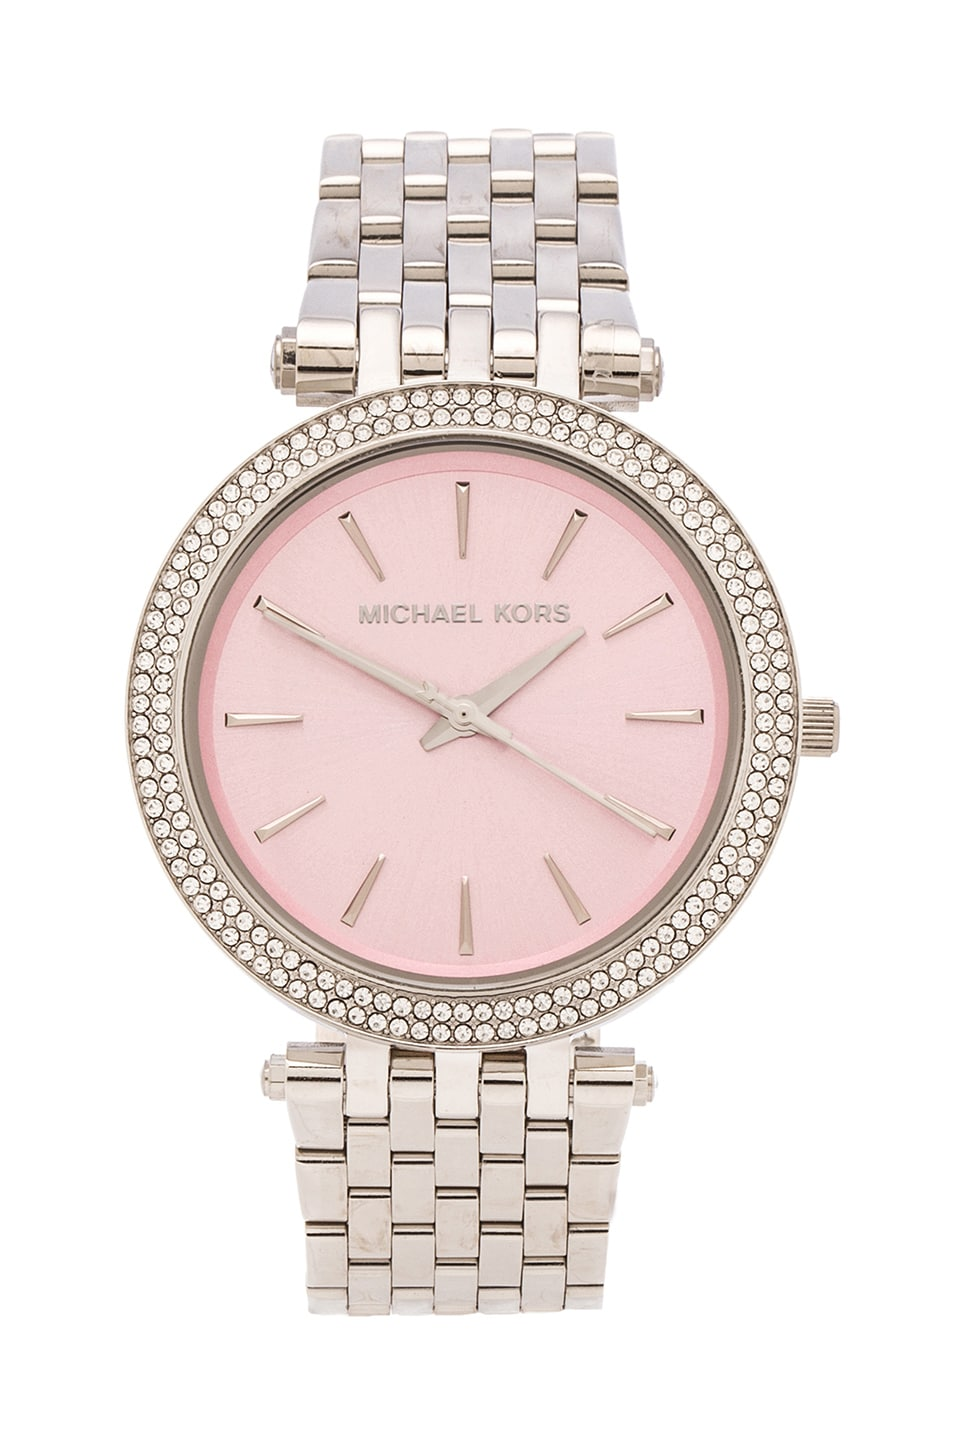 Michael Kors Darci in Silver & Pink